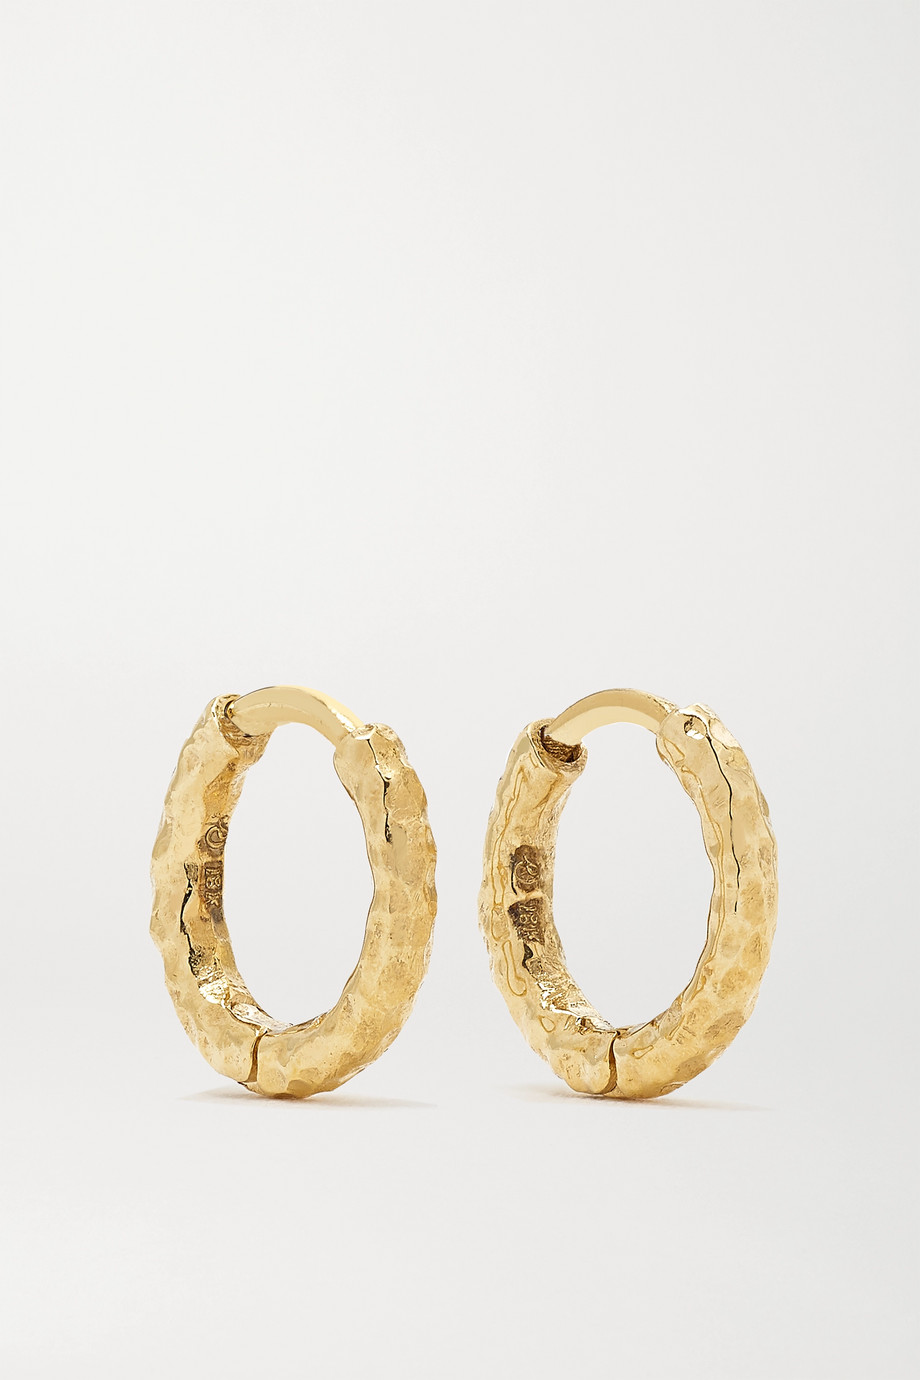 Octavia Elizabeth + NET SUSTAIN Micro Gabby 18-karat gold hoop earrings